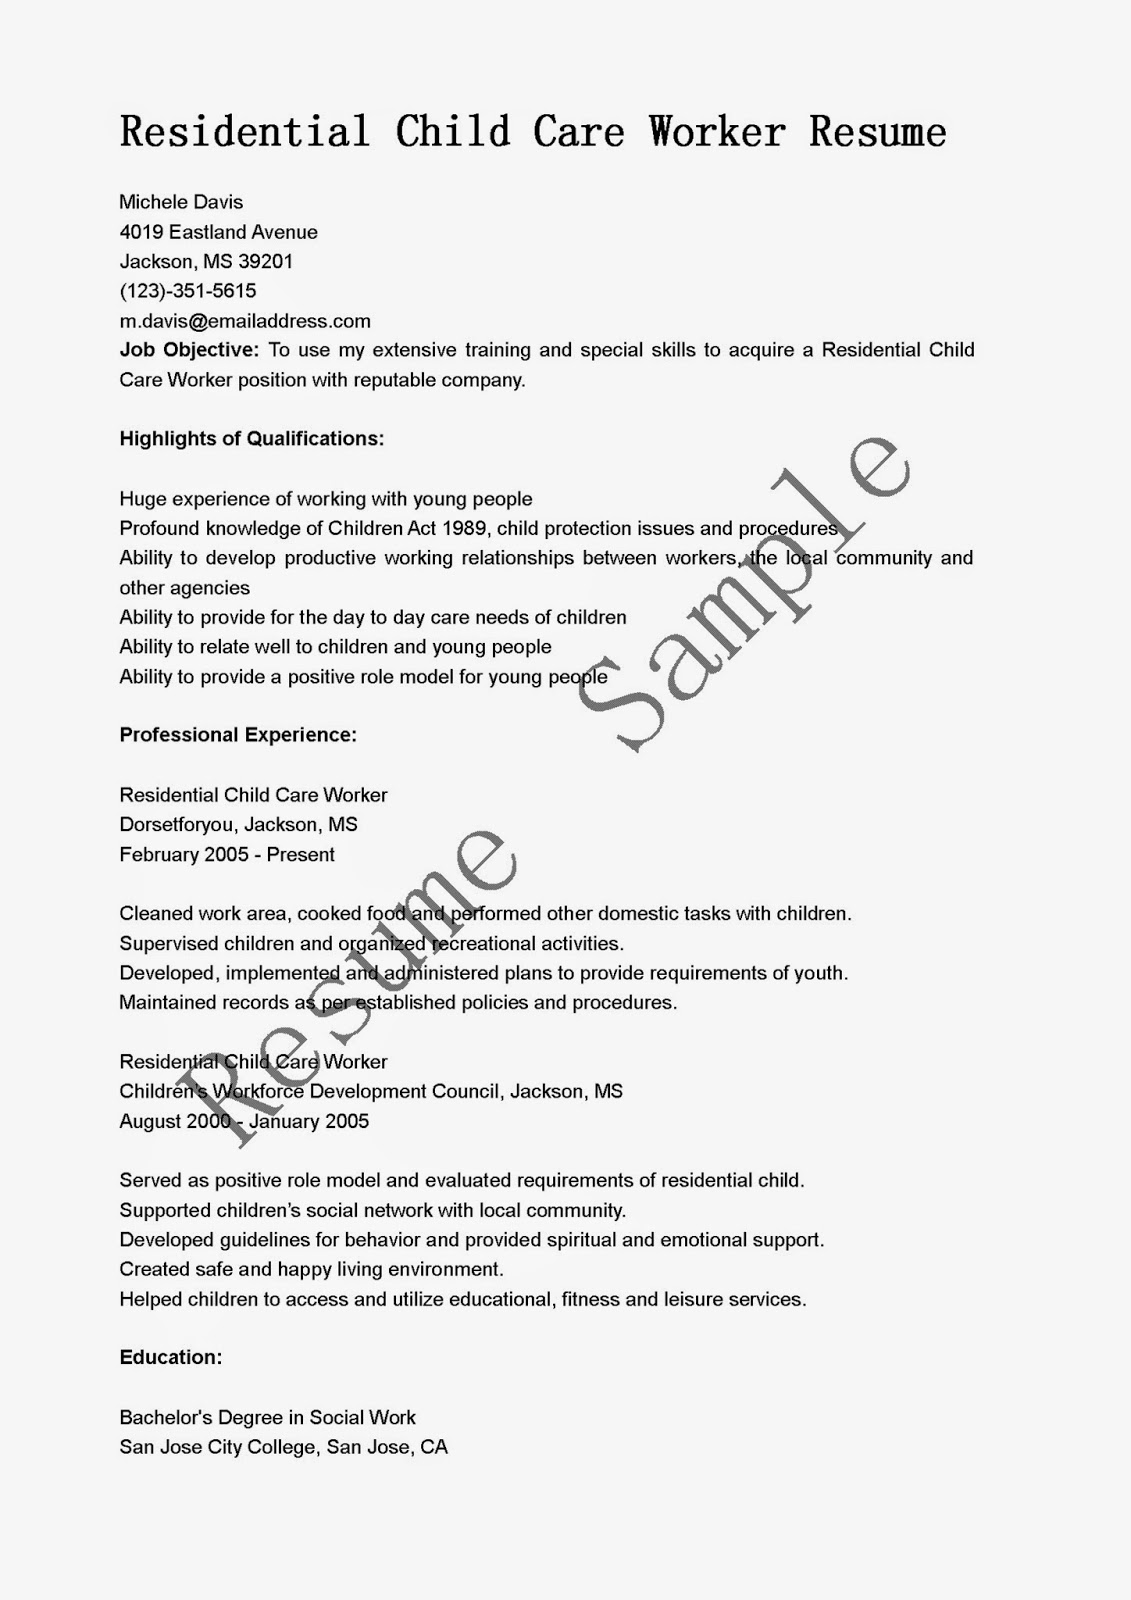 Resume for airlines ticketing agent